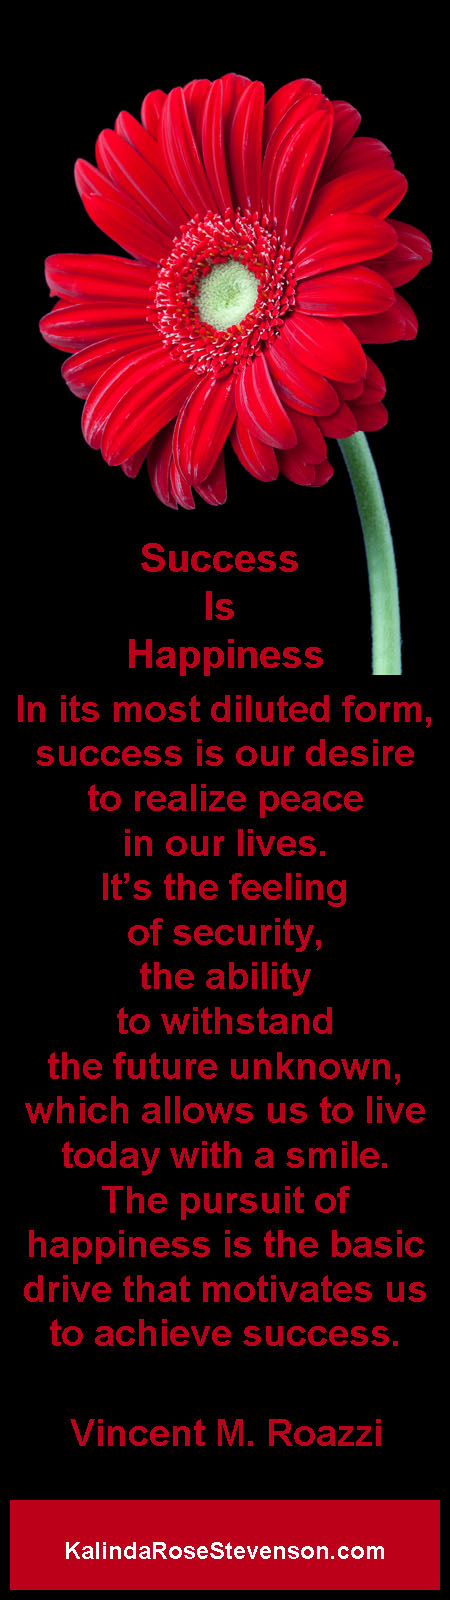 Vincent Roazzi Quote Success is Happiness